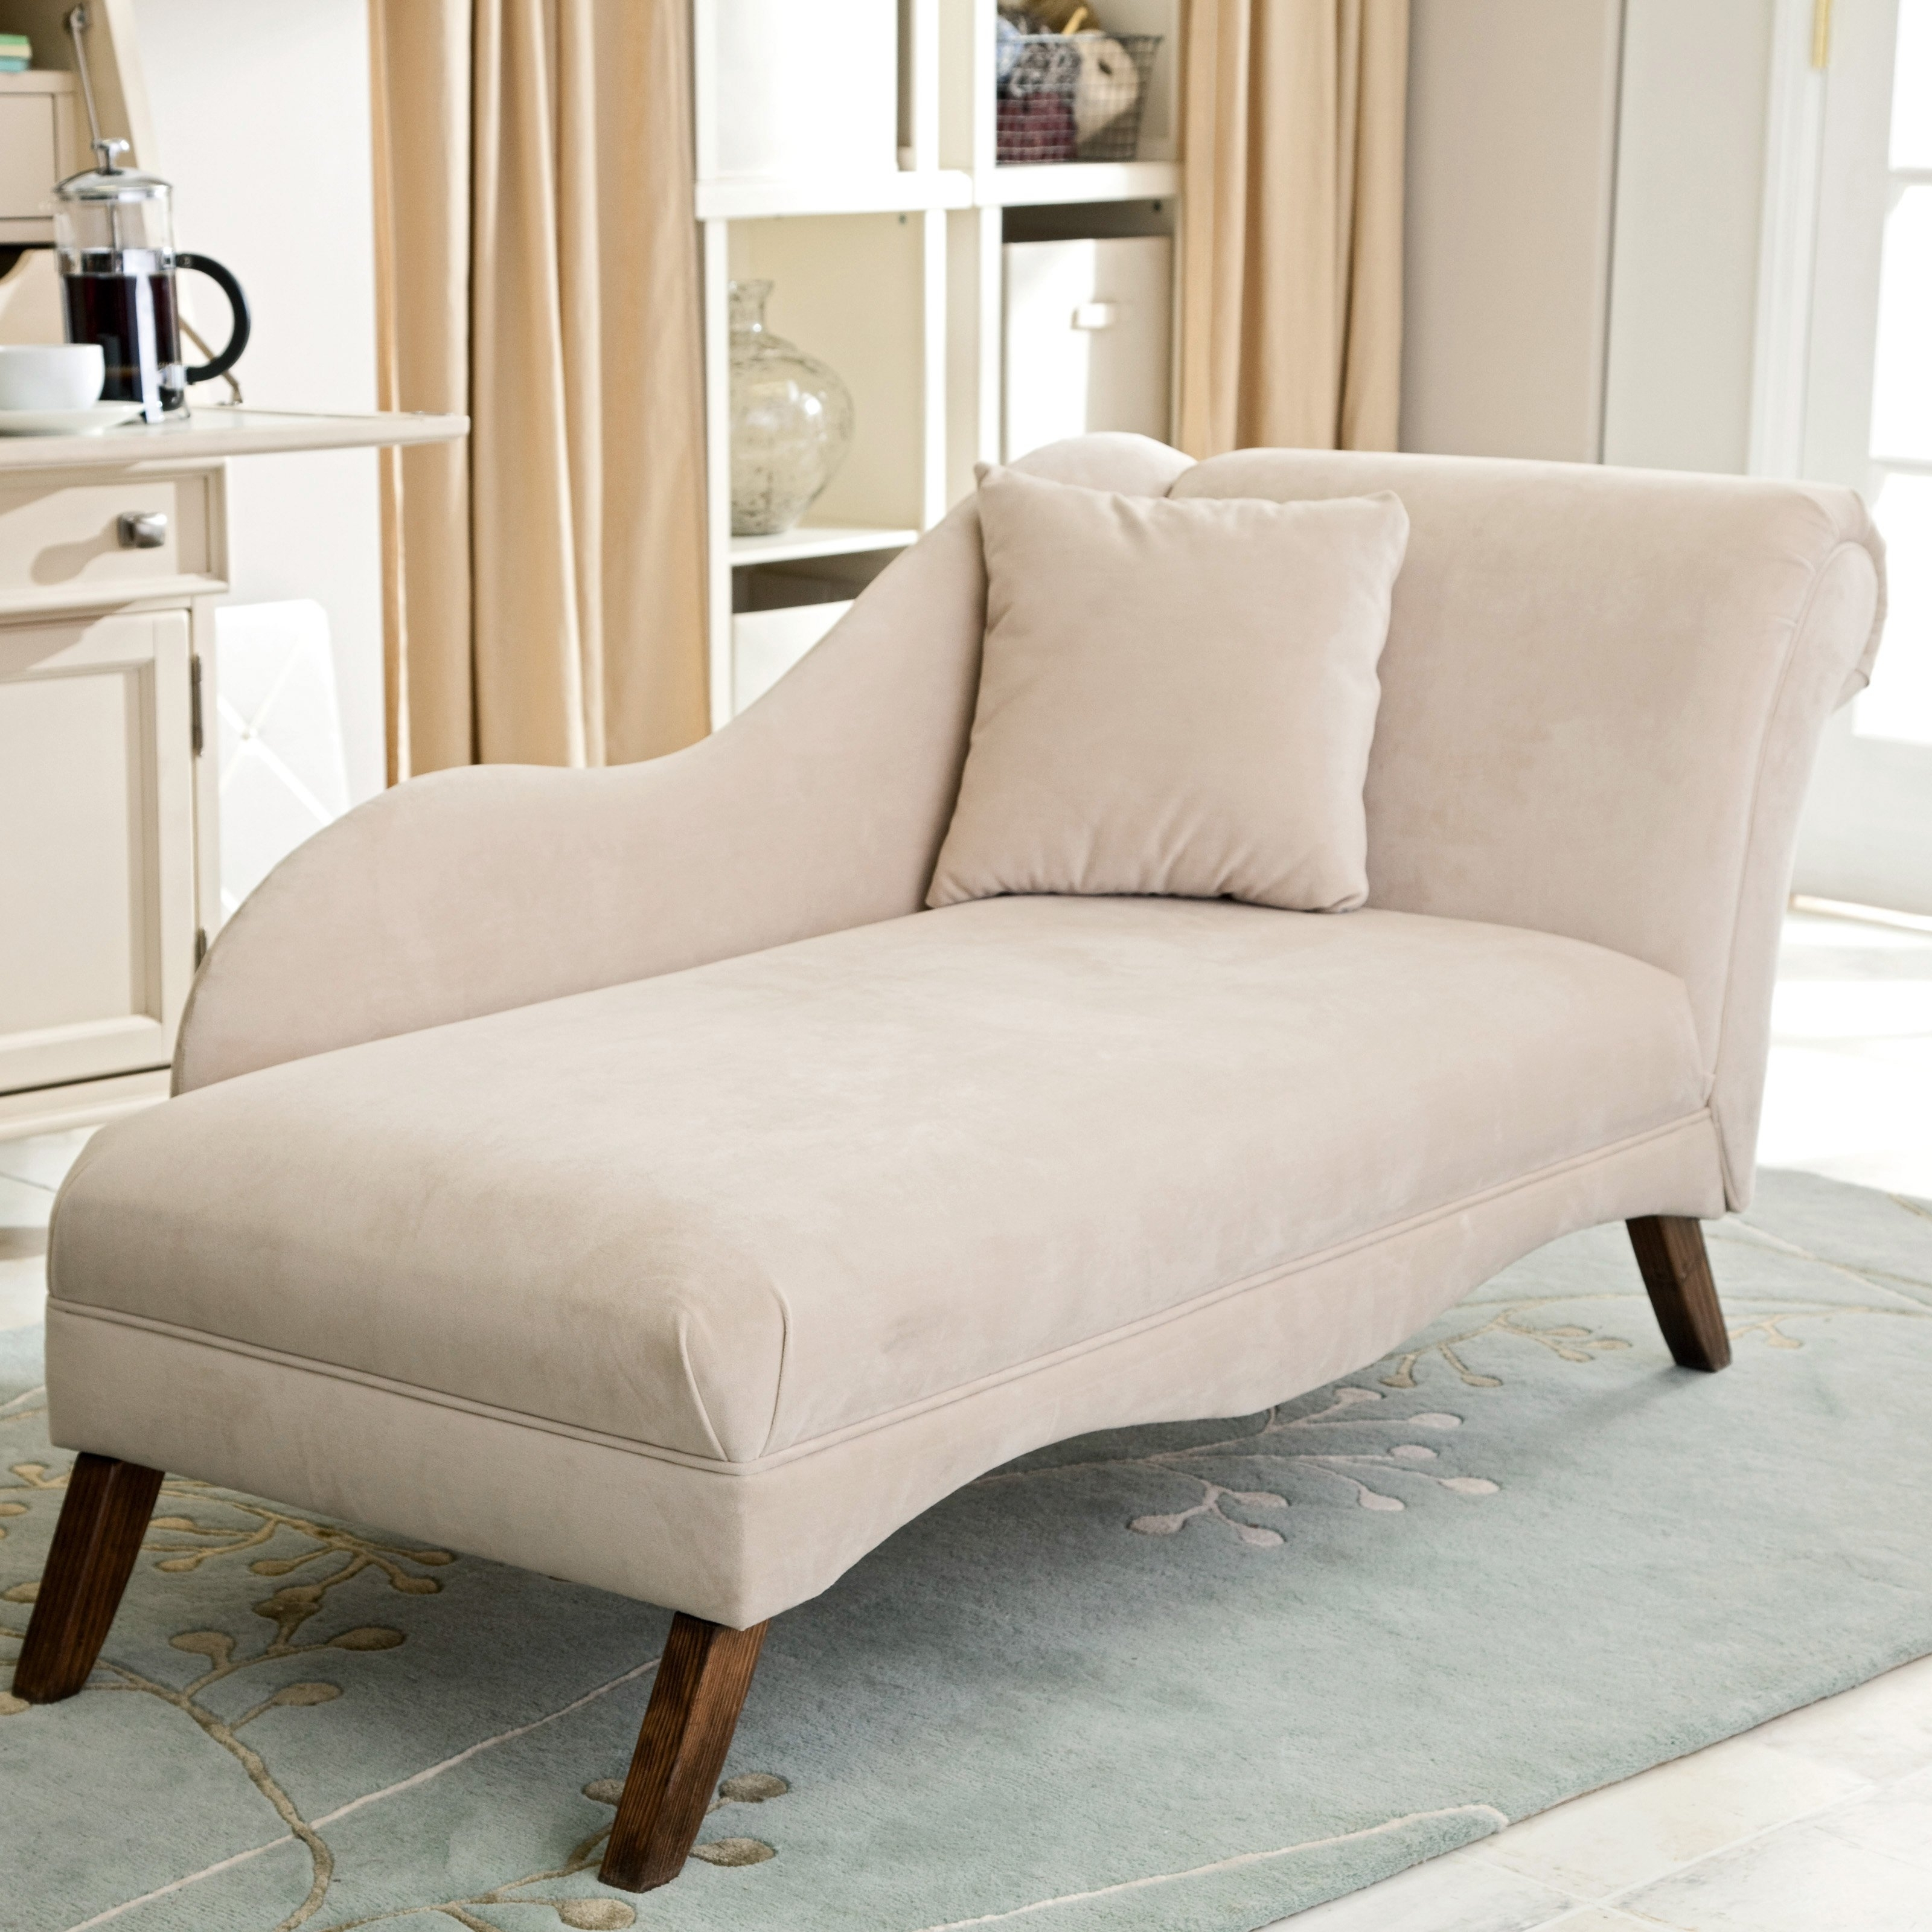 Cheap Indoor Chaise Lounges Regarding Well Known Leather Chaise Lounge Chairs Indoors • Lounge Chairs Ideas (View 6 of 15)